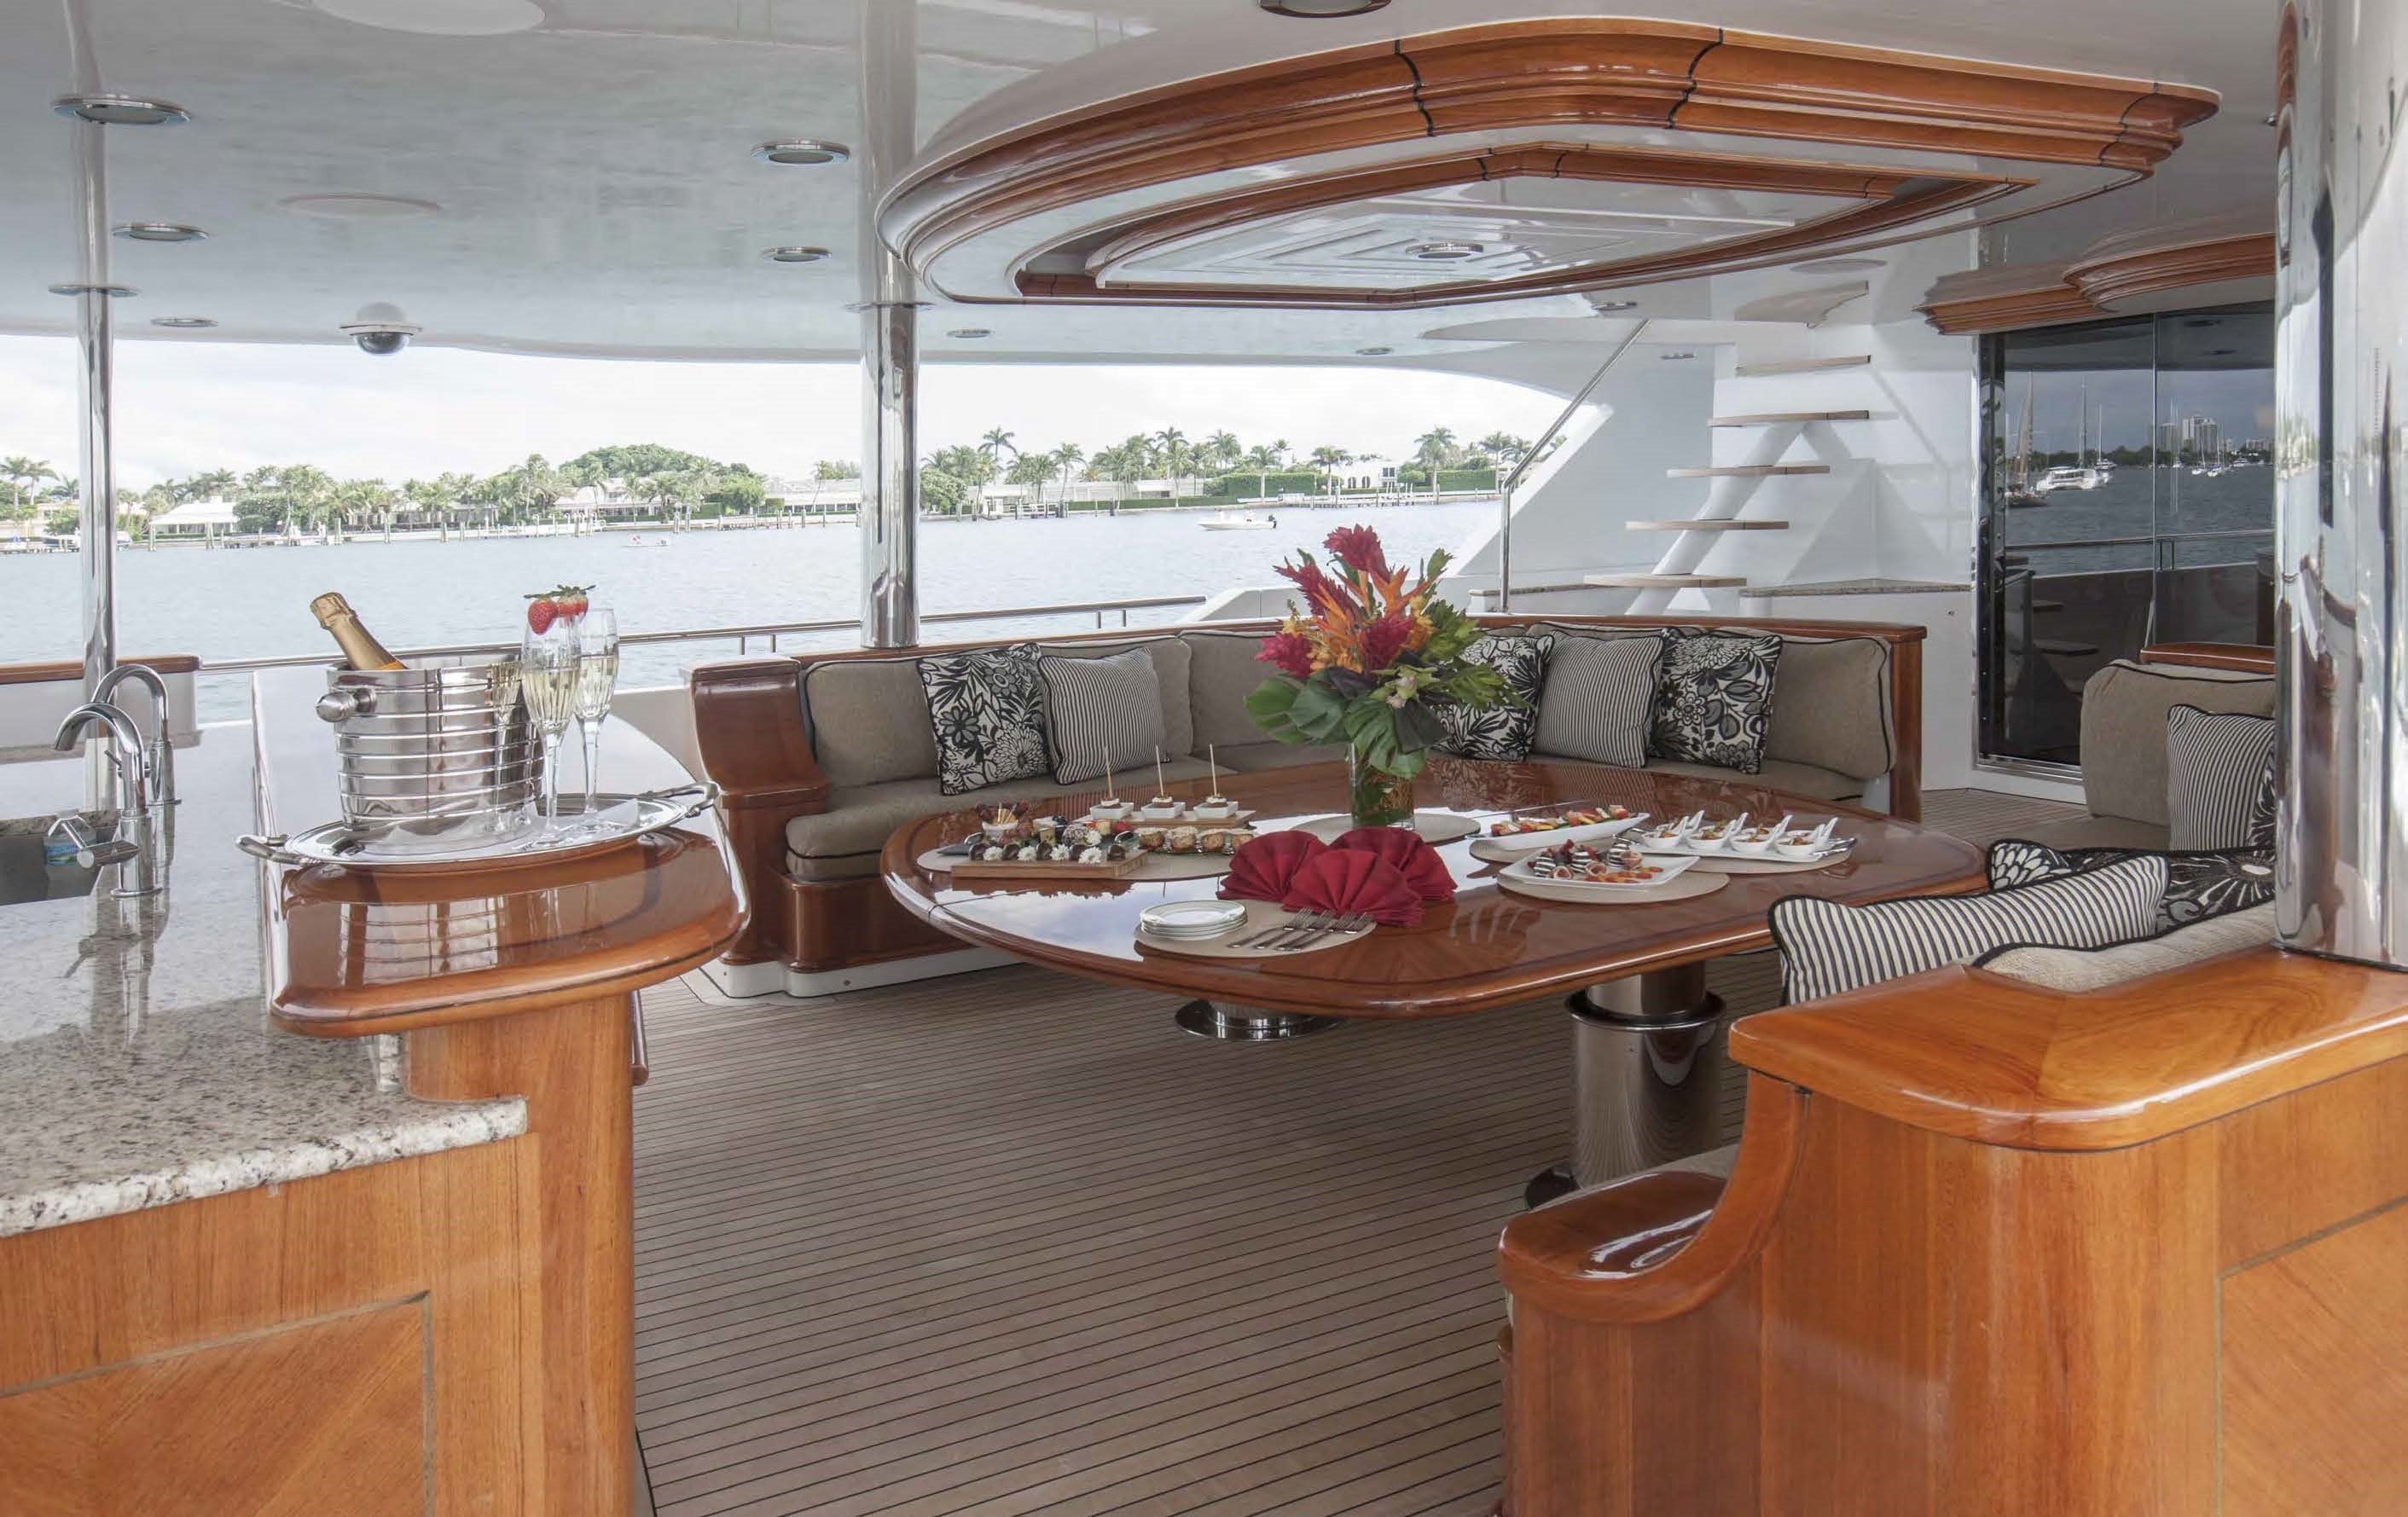 Aft Deck Adjustable Table For Dining And Full Bar With TV